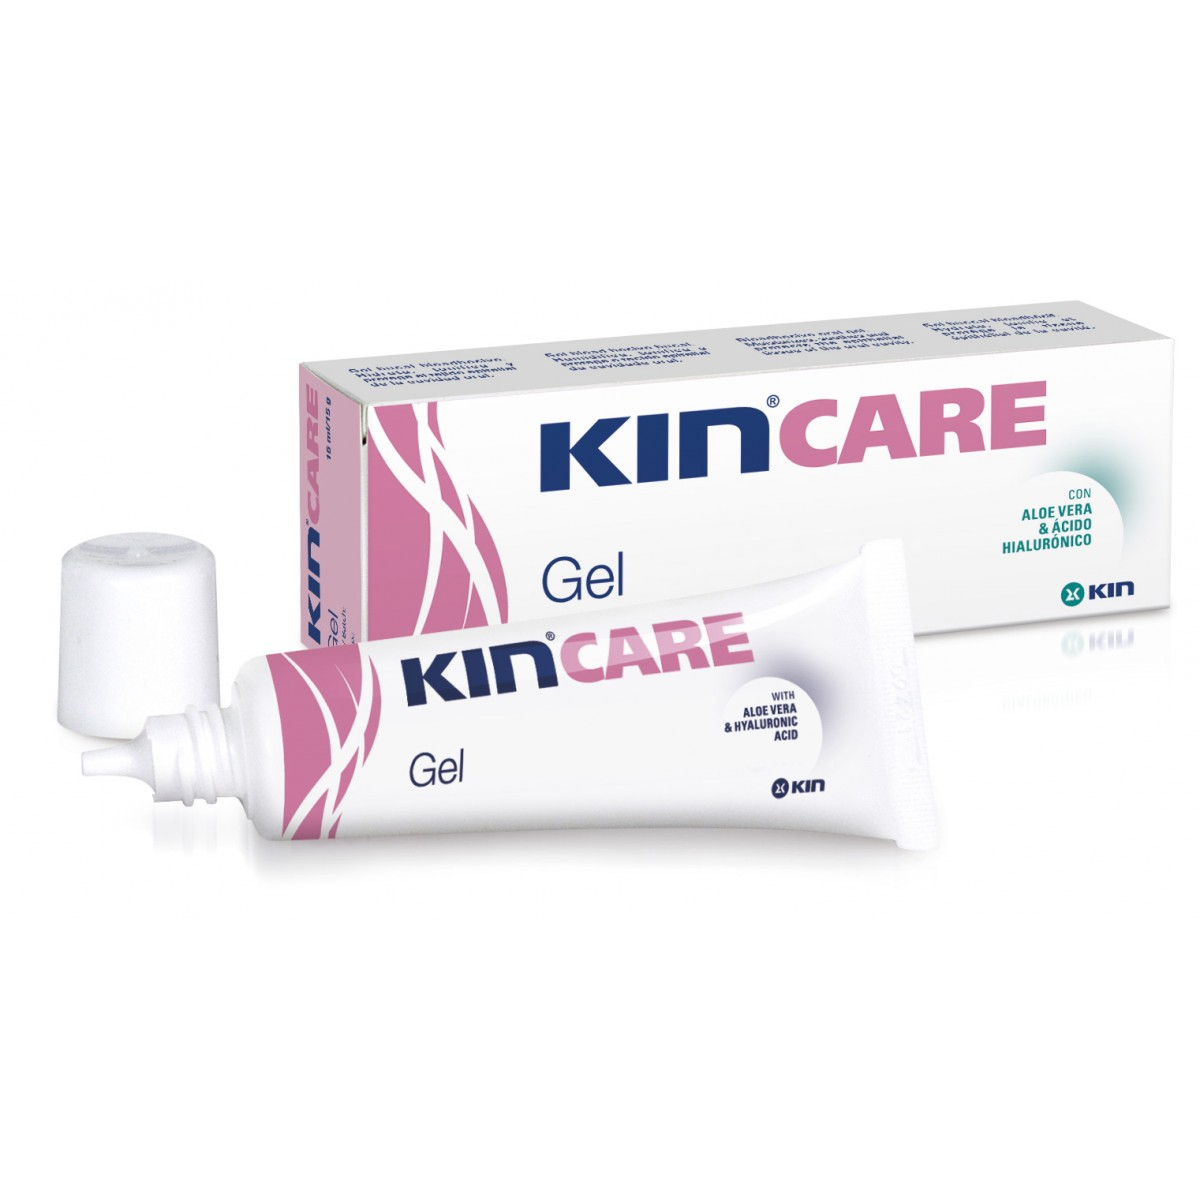 Kin Care Gel 36g/15ml - tratamento de aftas (PharmaKIN)